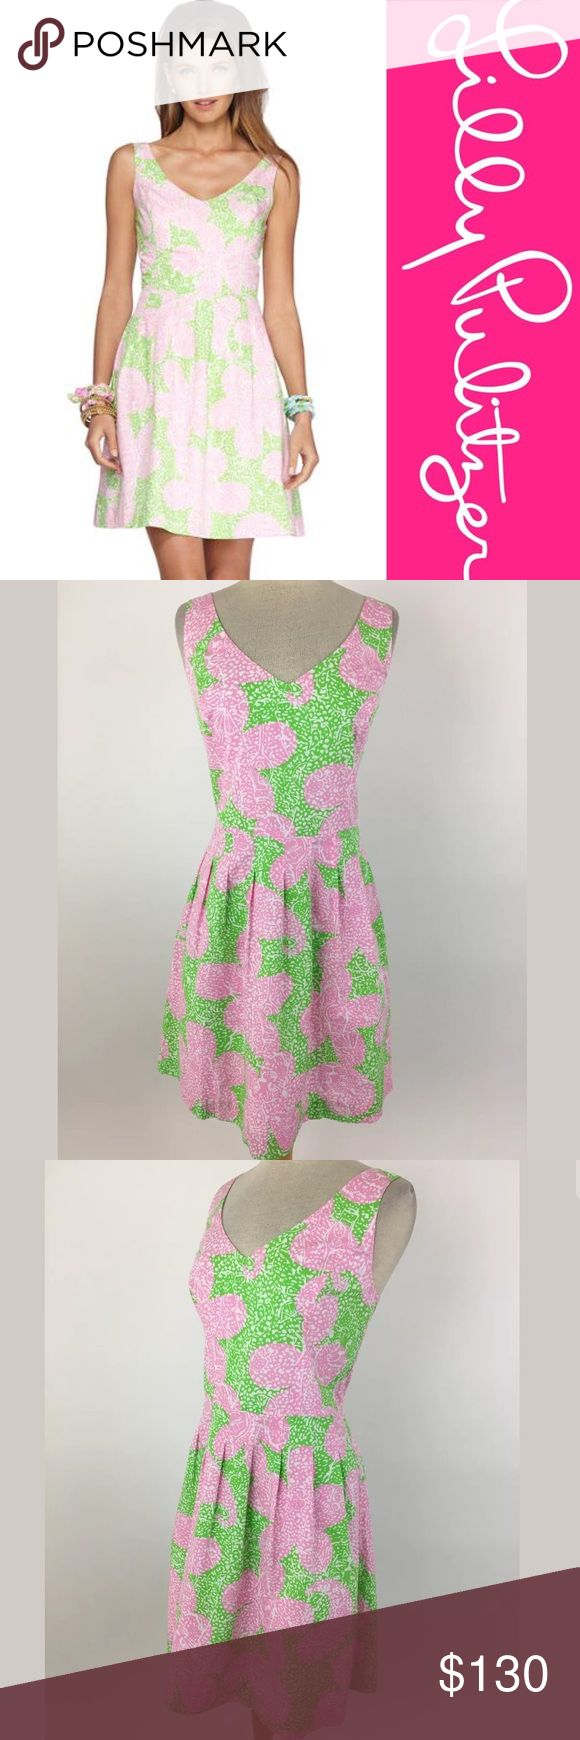 """Lilly Pulitzer Lexington Dress Waist: 33.5"""" Bust: 40"""" Shoulder to hem: 38.75"""" 100% cotton, lined in 100% cotton. The color is brighter than the stock photo.  Item #148 Lilly Pulitzer Dresses"""